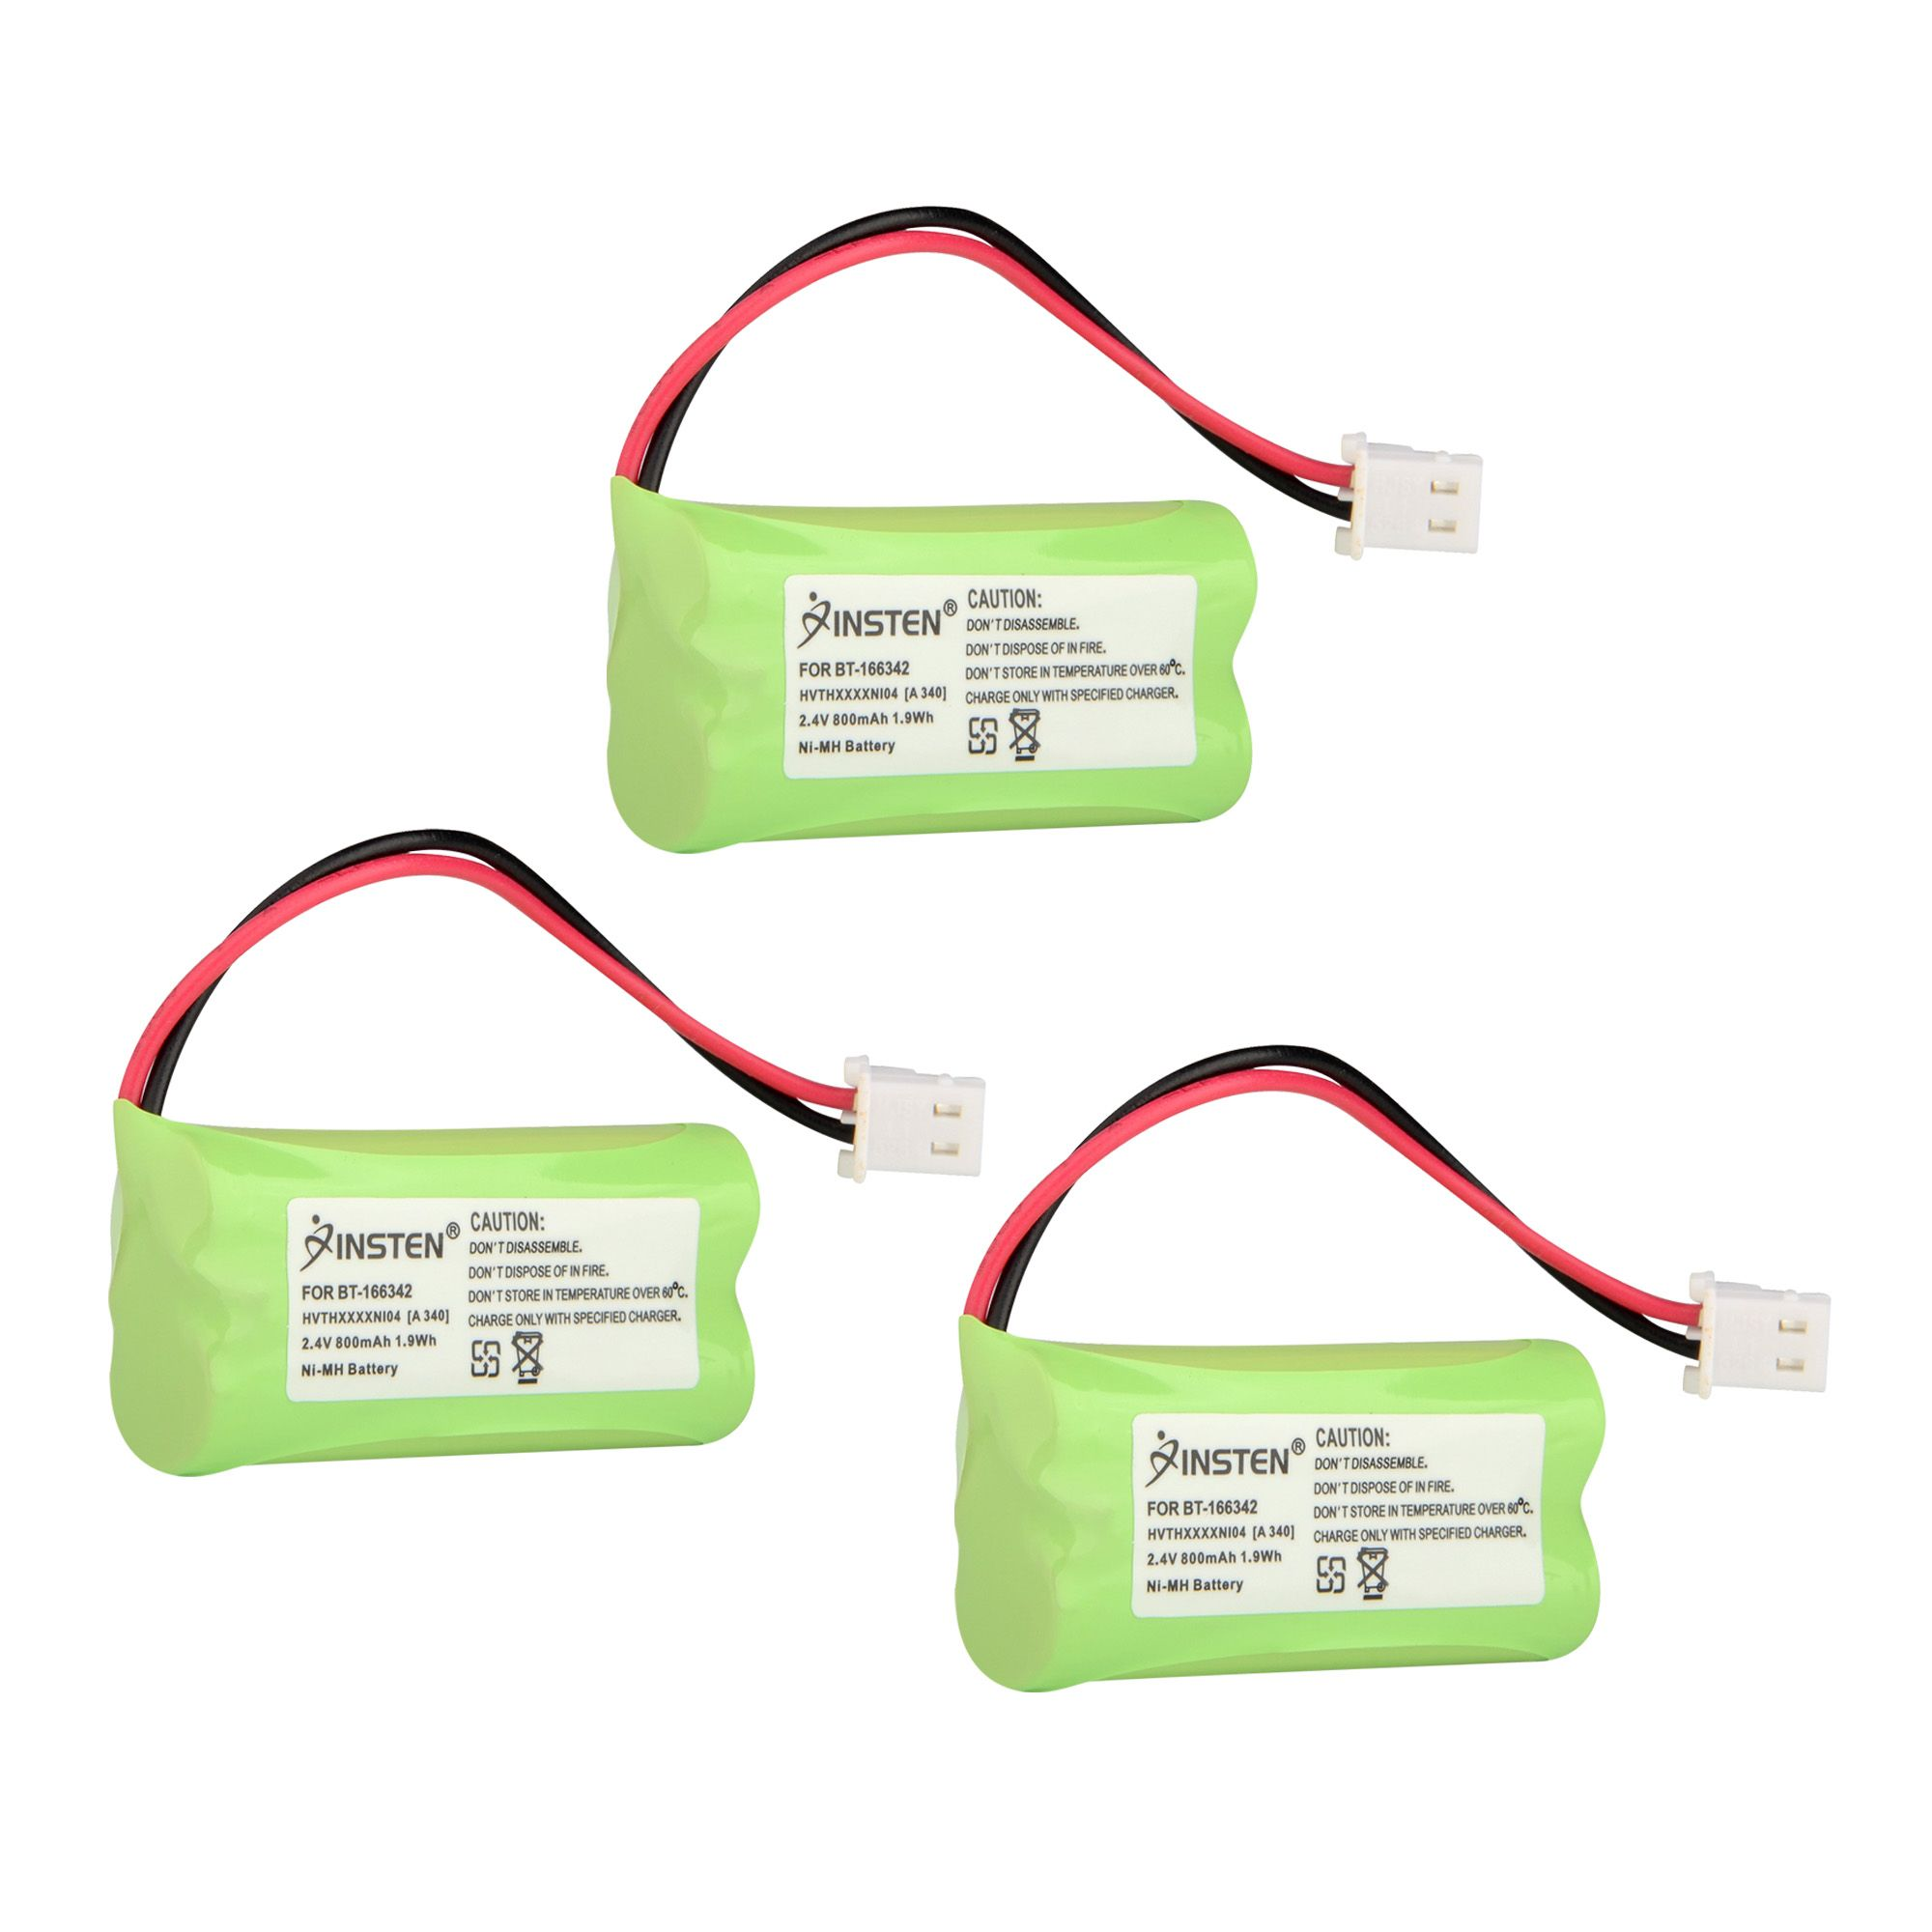 Insten (3 Pack) Extra Ni-Mh Cordless Phone Battery Power For Vtech BT-166342 6001 6501 6522 6609 6641 6648 6649 (3-Pack Bundle)